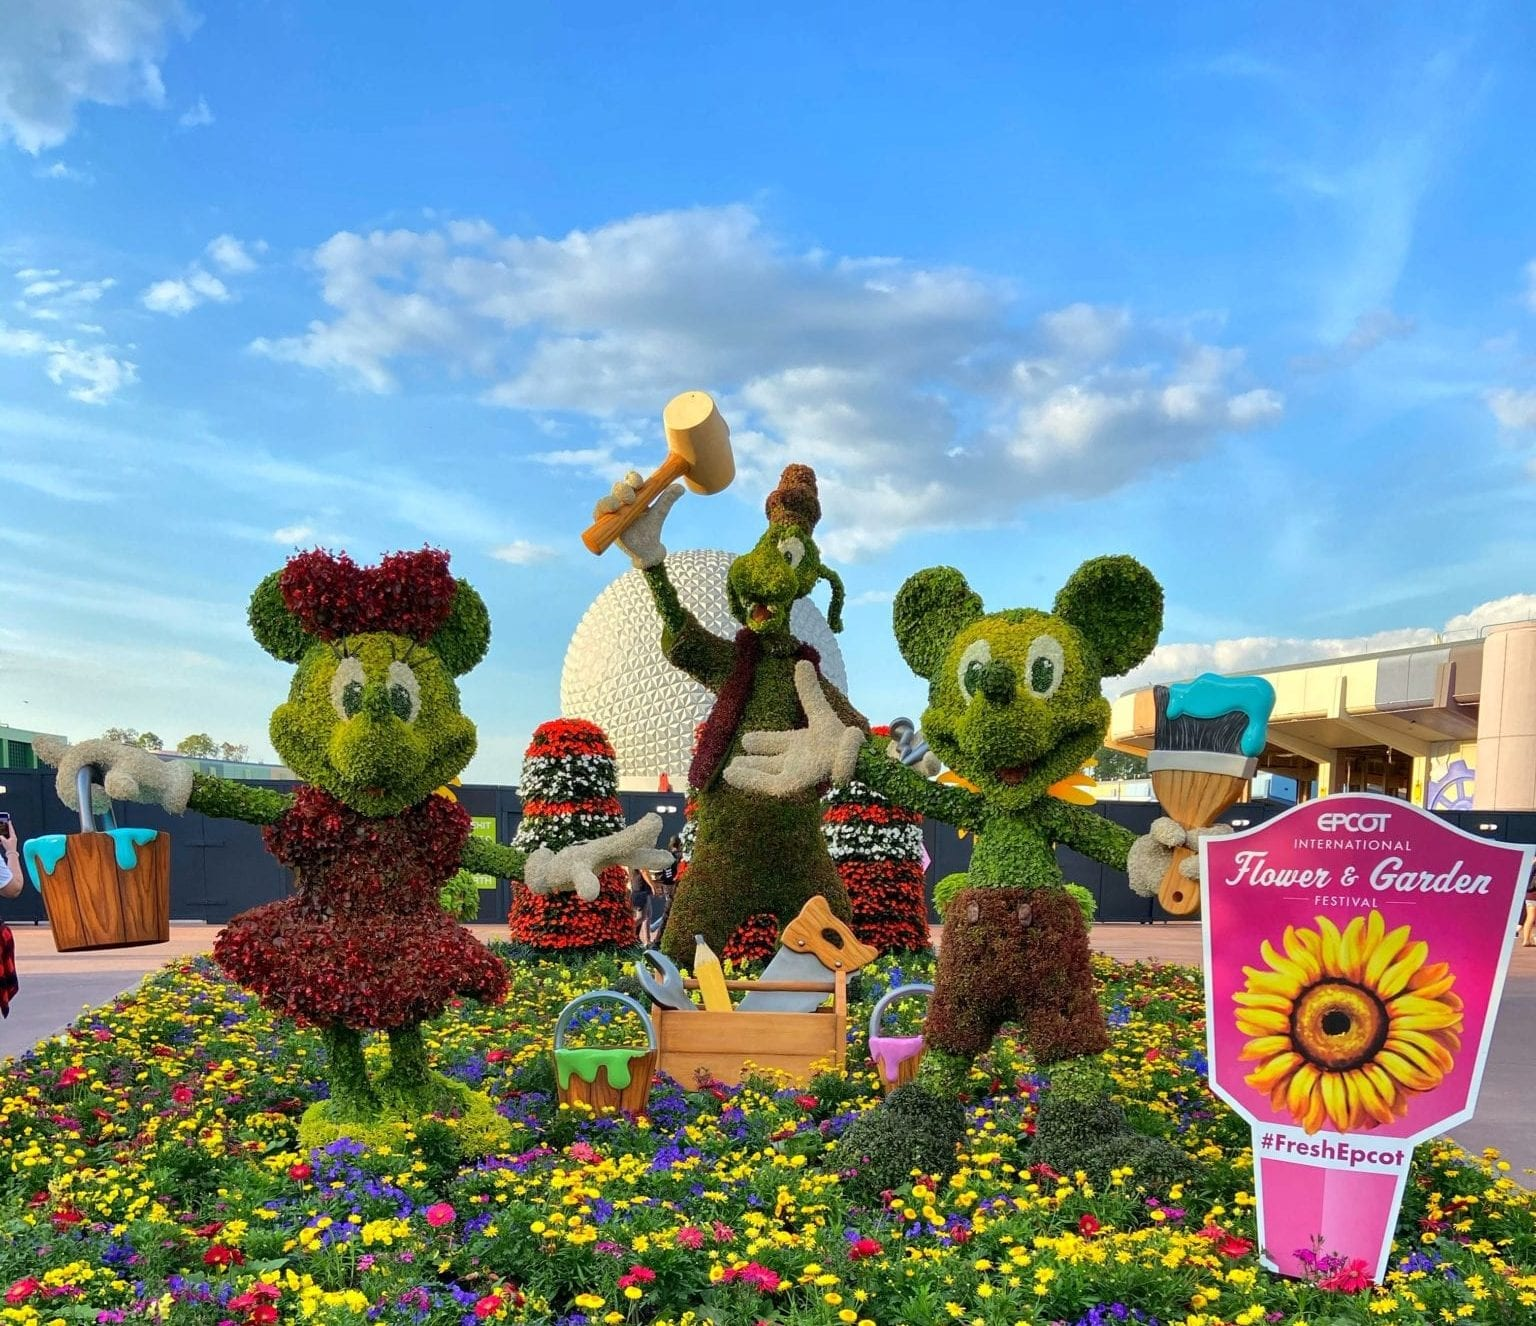 EPCOT Flower and Garden Festival 2020